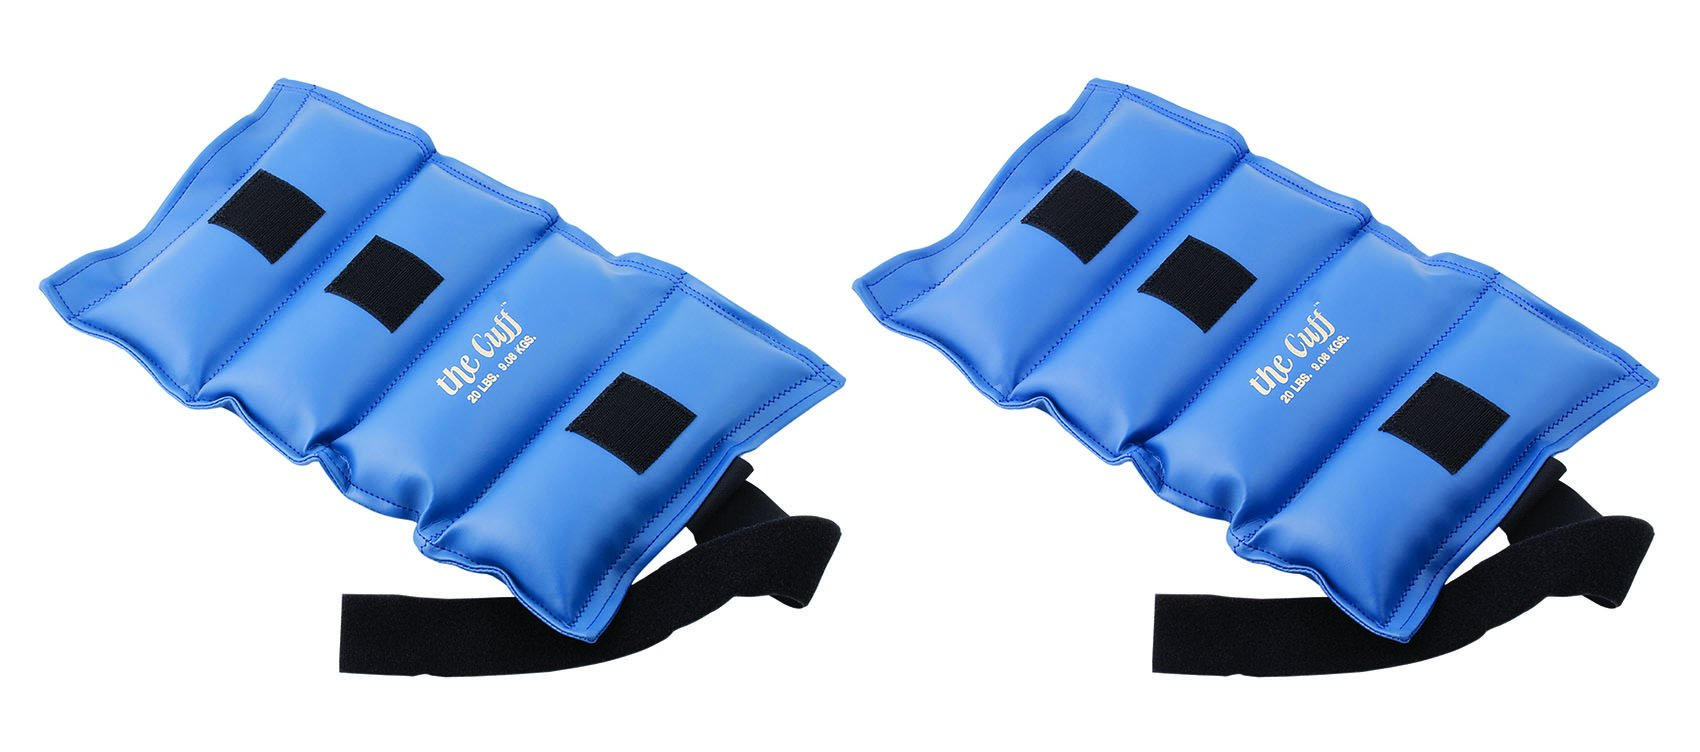 The Cuff Original Ankle and Wrist Weight - 20 Pound, Blue - Set of 2